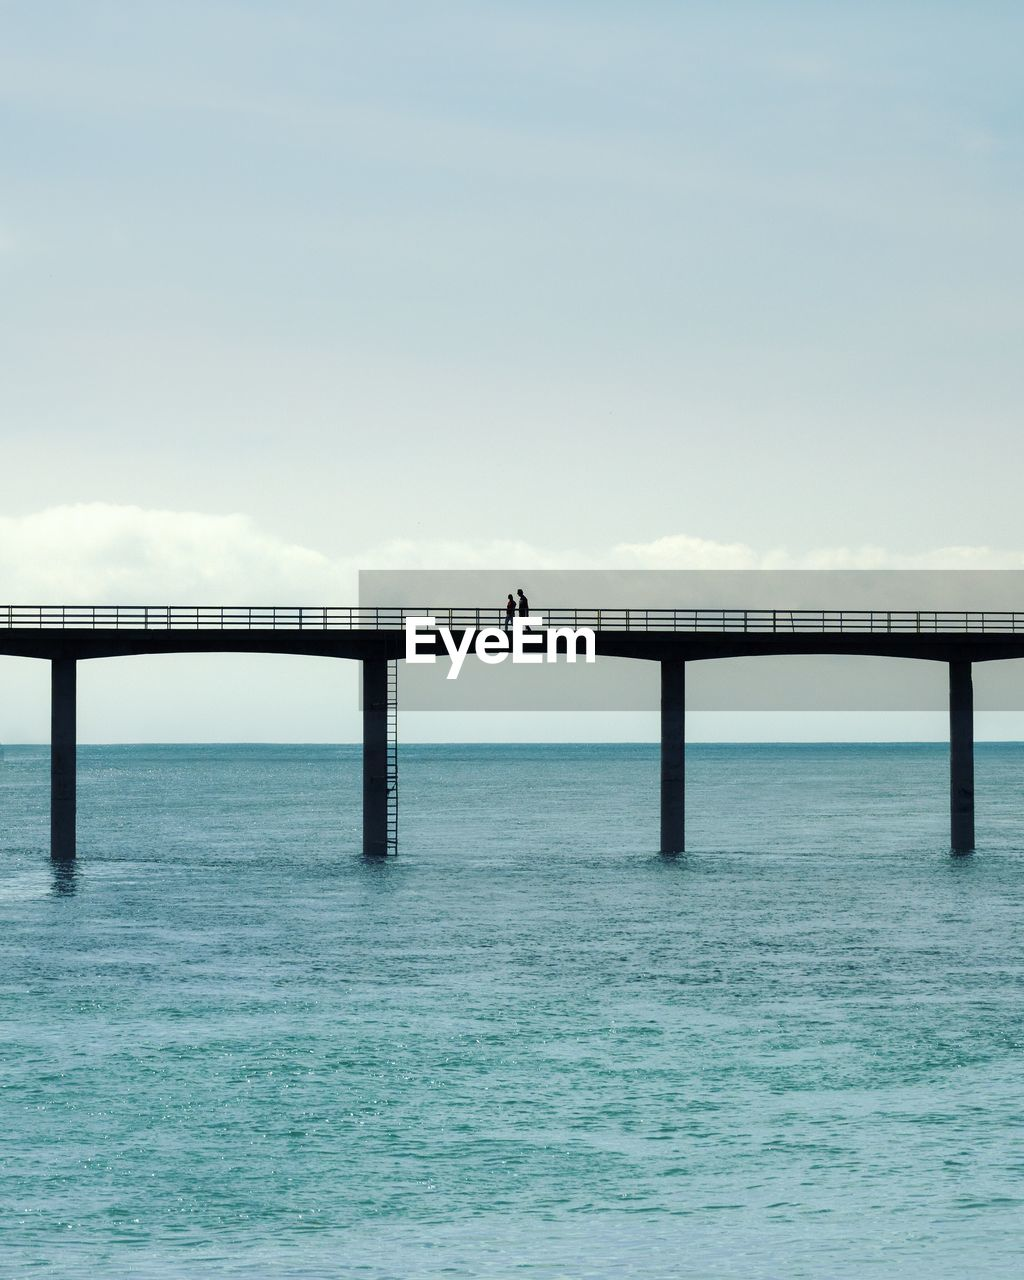 sky, water, bridge, sea, connection, architecture, built structure, bridge - man made structure, waterfront, nature, transportation, cloud - sky, beauty in nature, day, engineering, scenics - nature, architectural column, outdoors, long